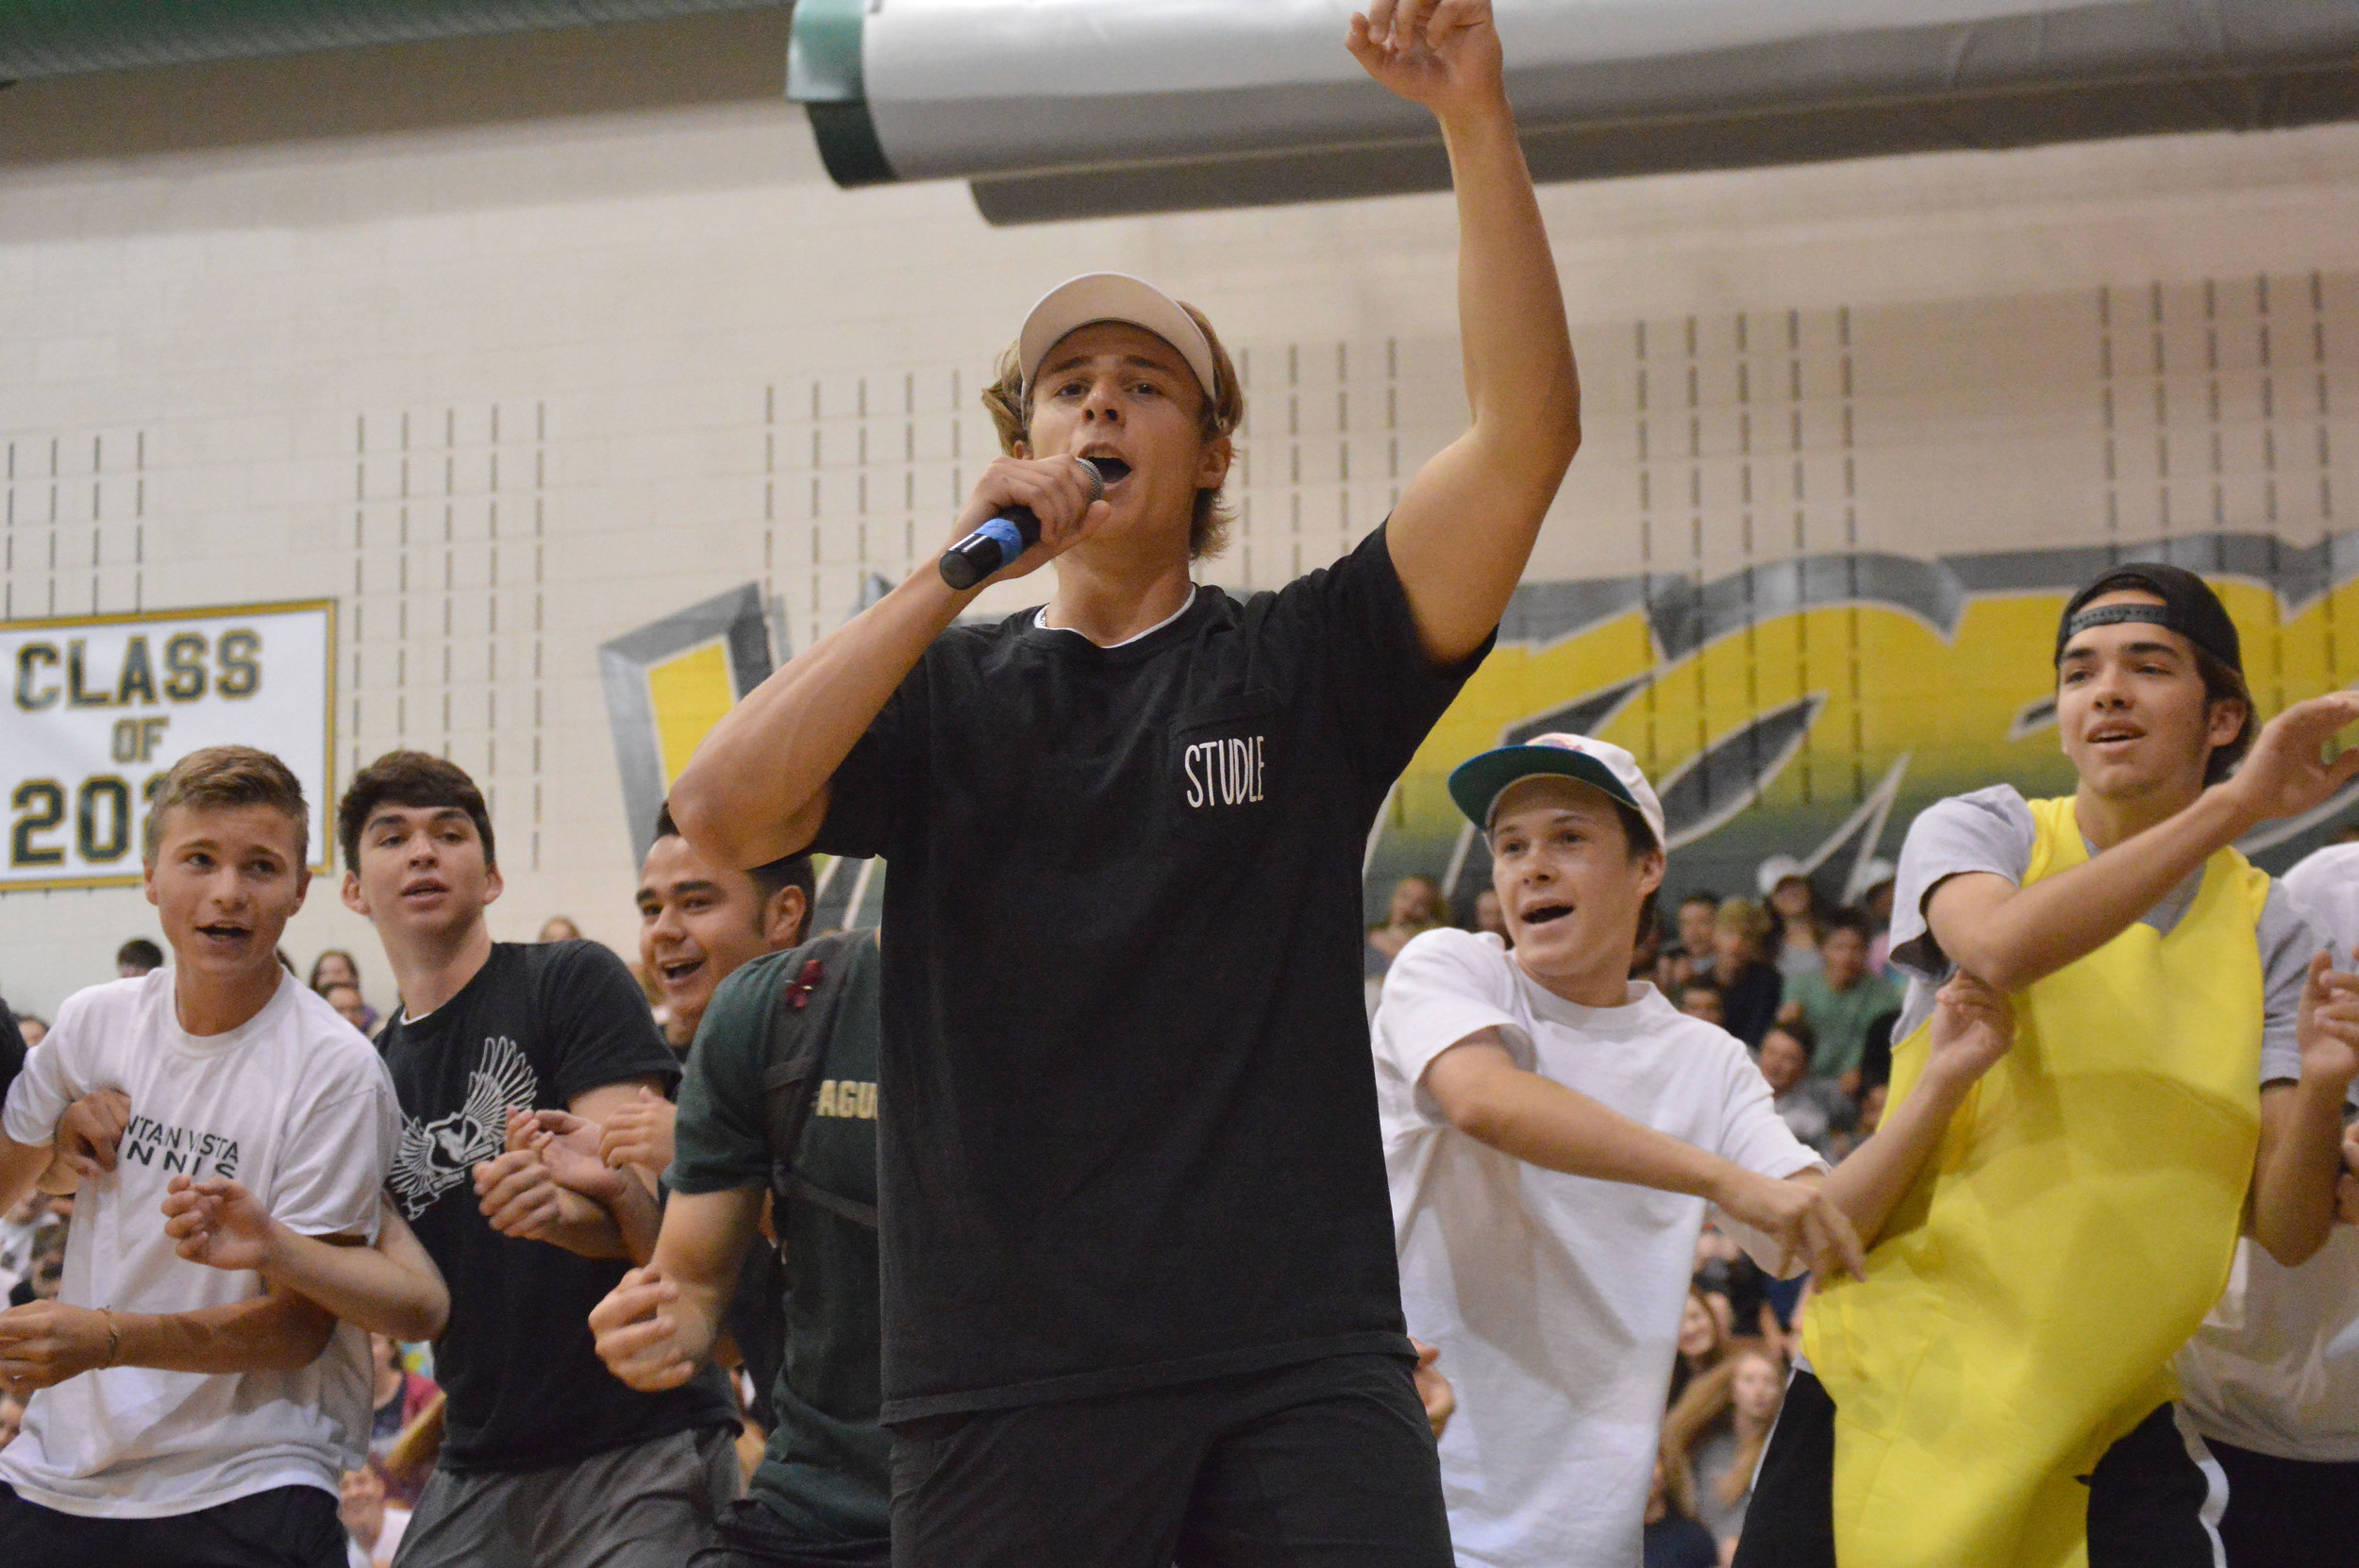 """Senior Jake Stein leads the student body in the famous """"Rafting"""" cheer."""